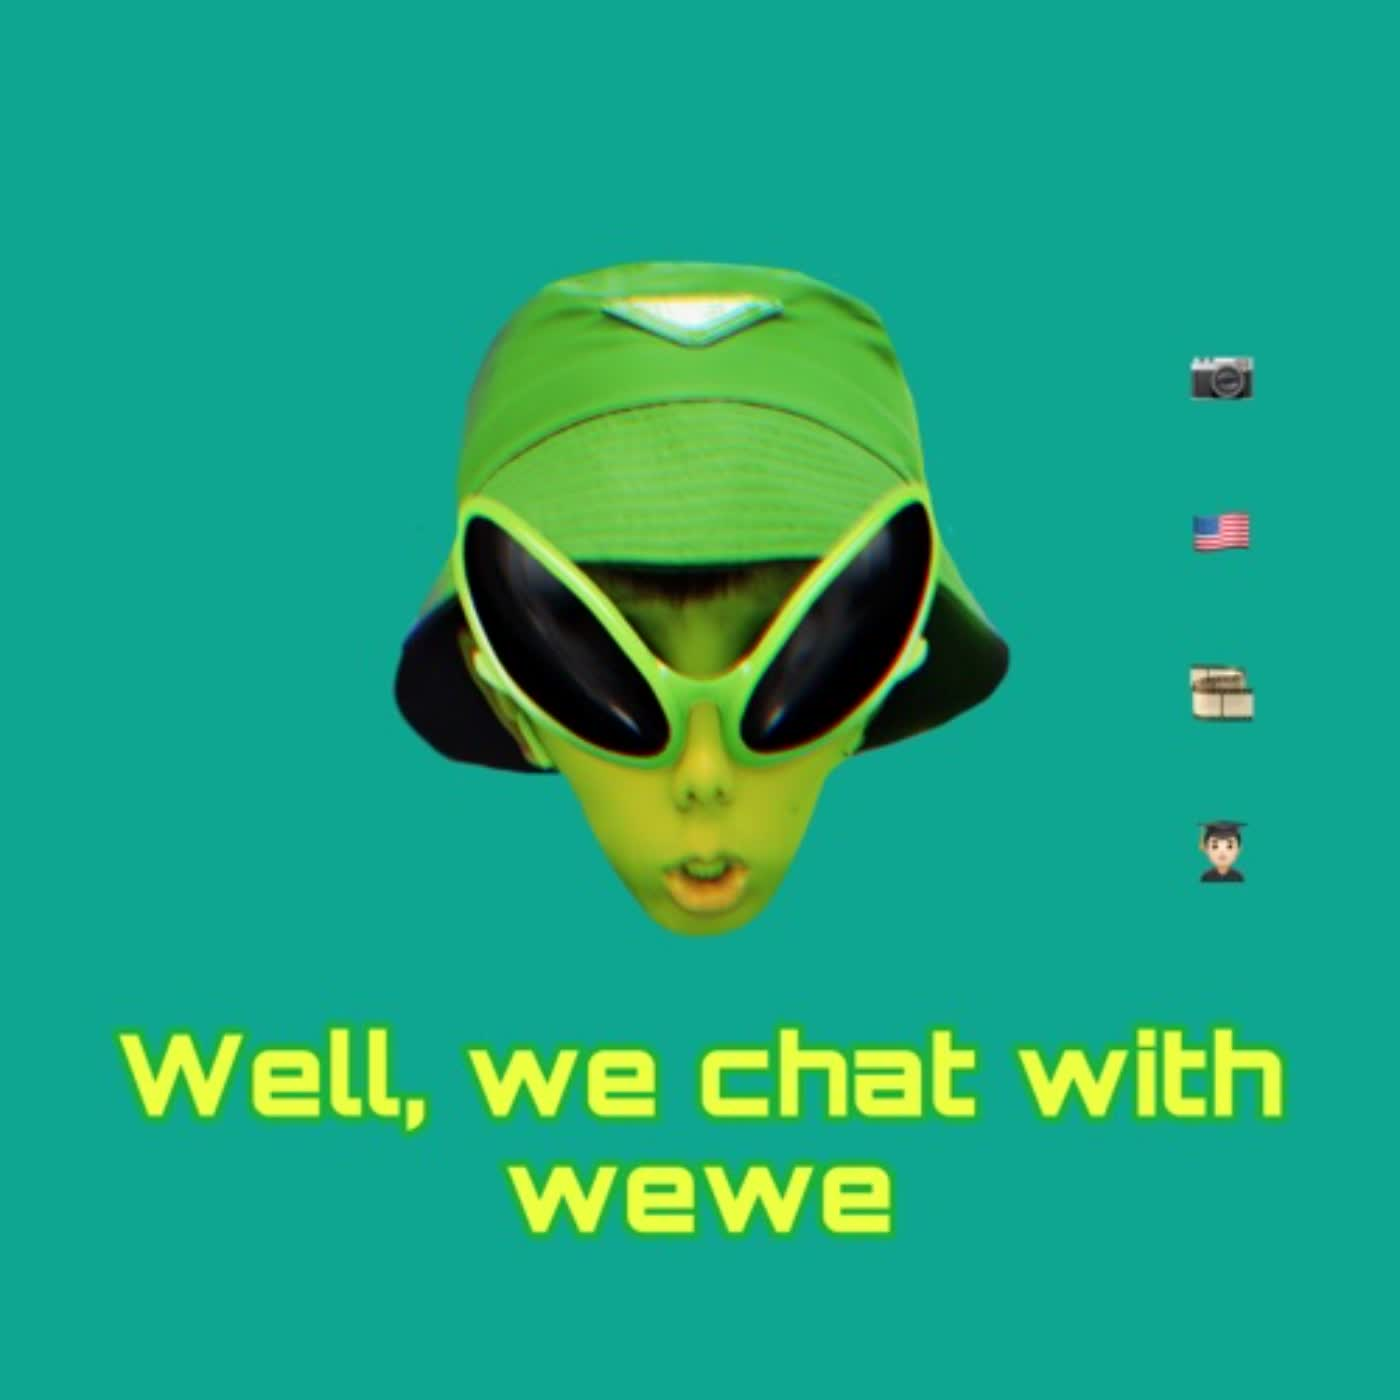 Well, we chat with WEWE